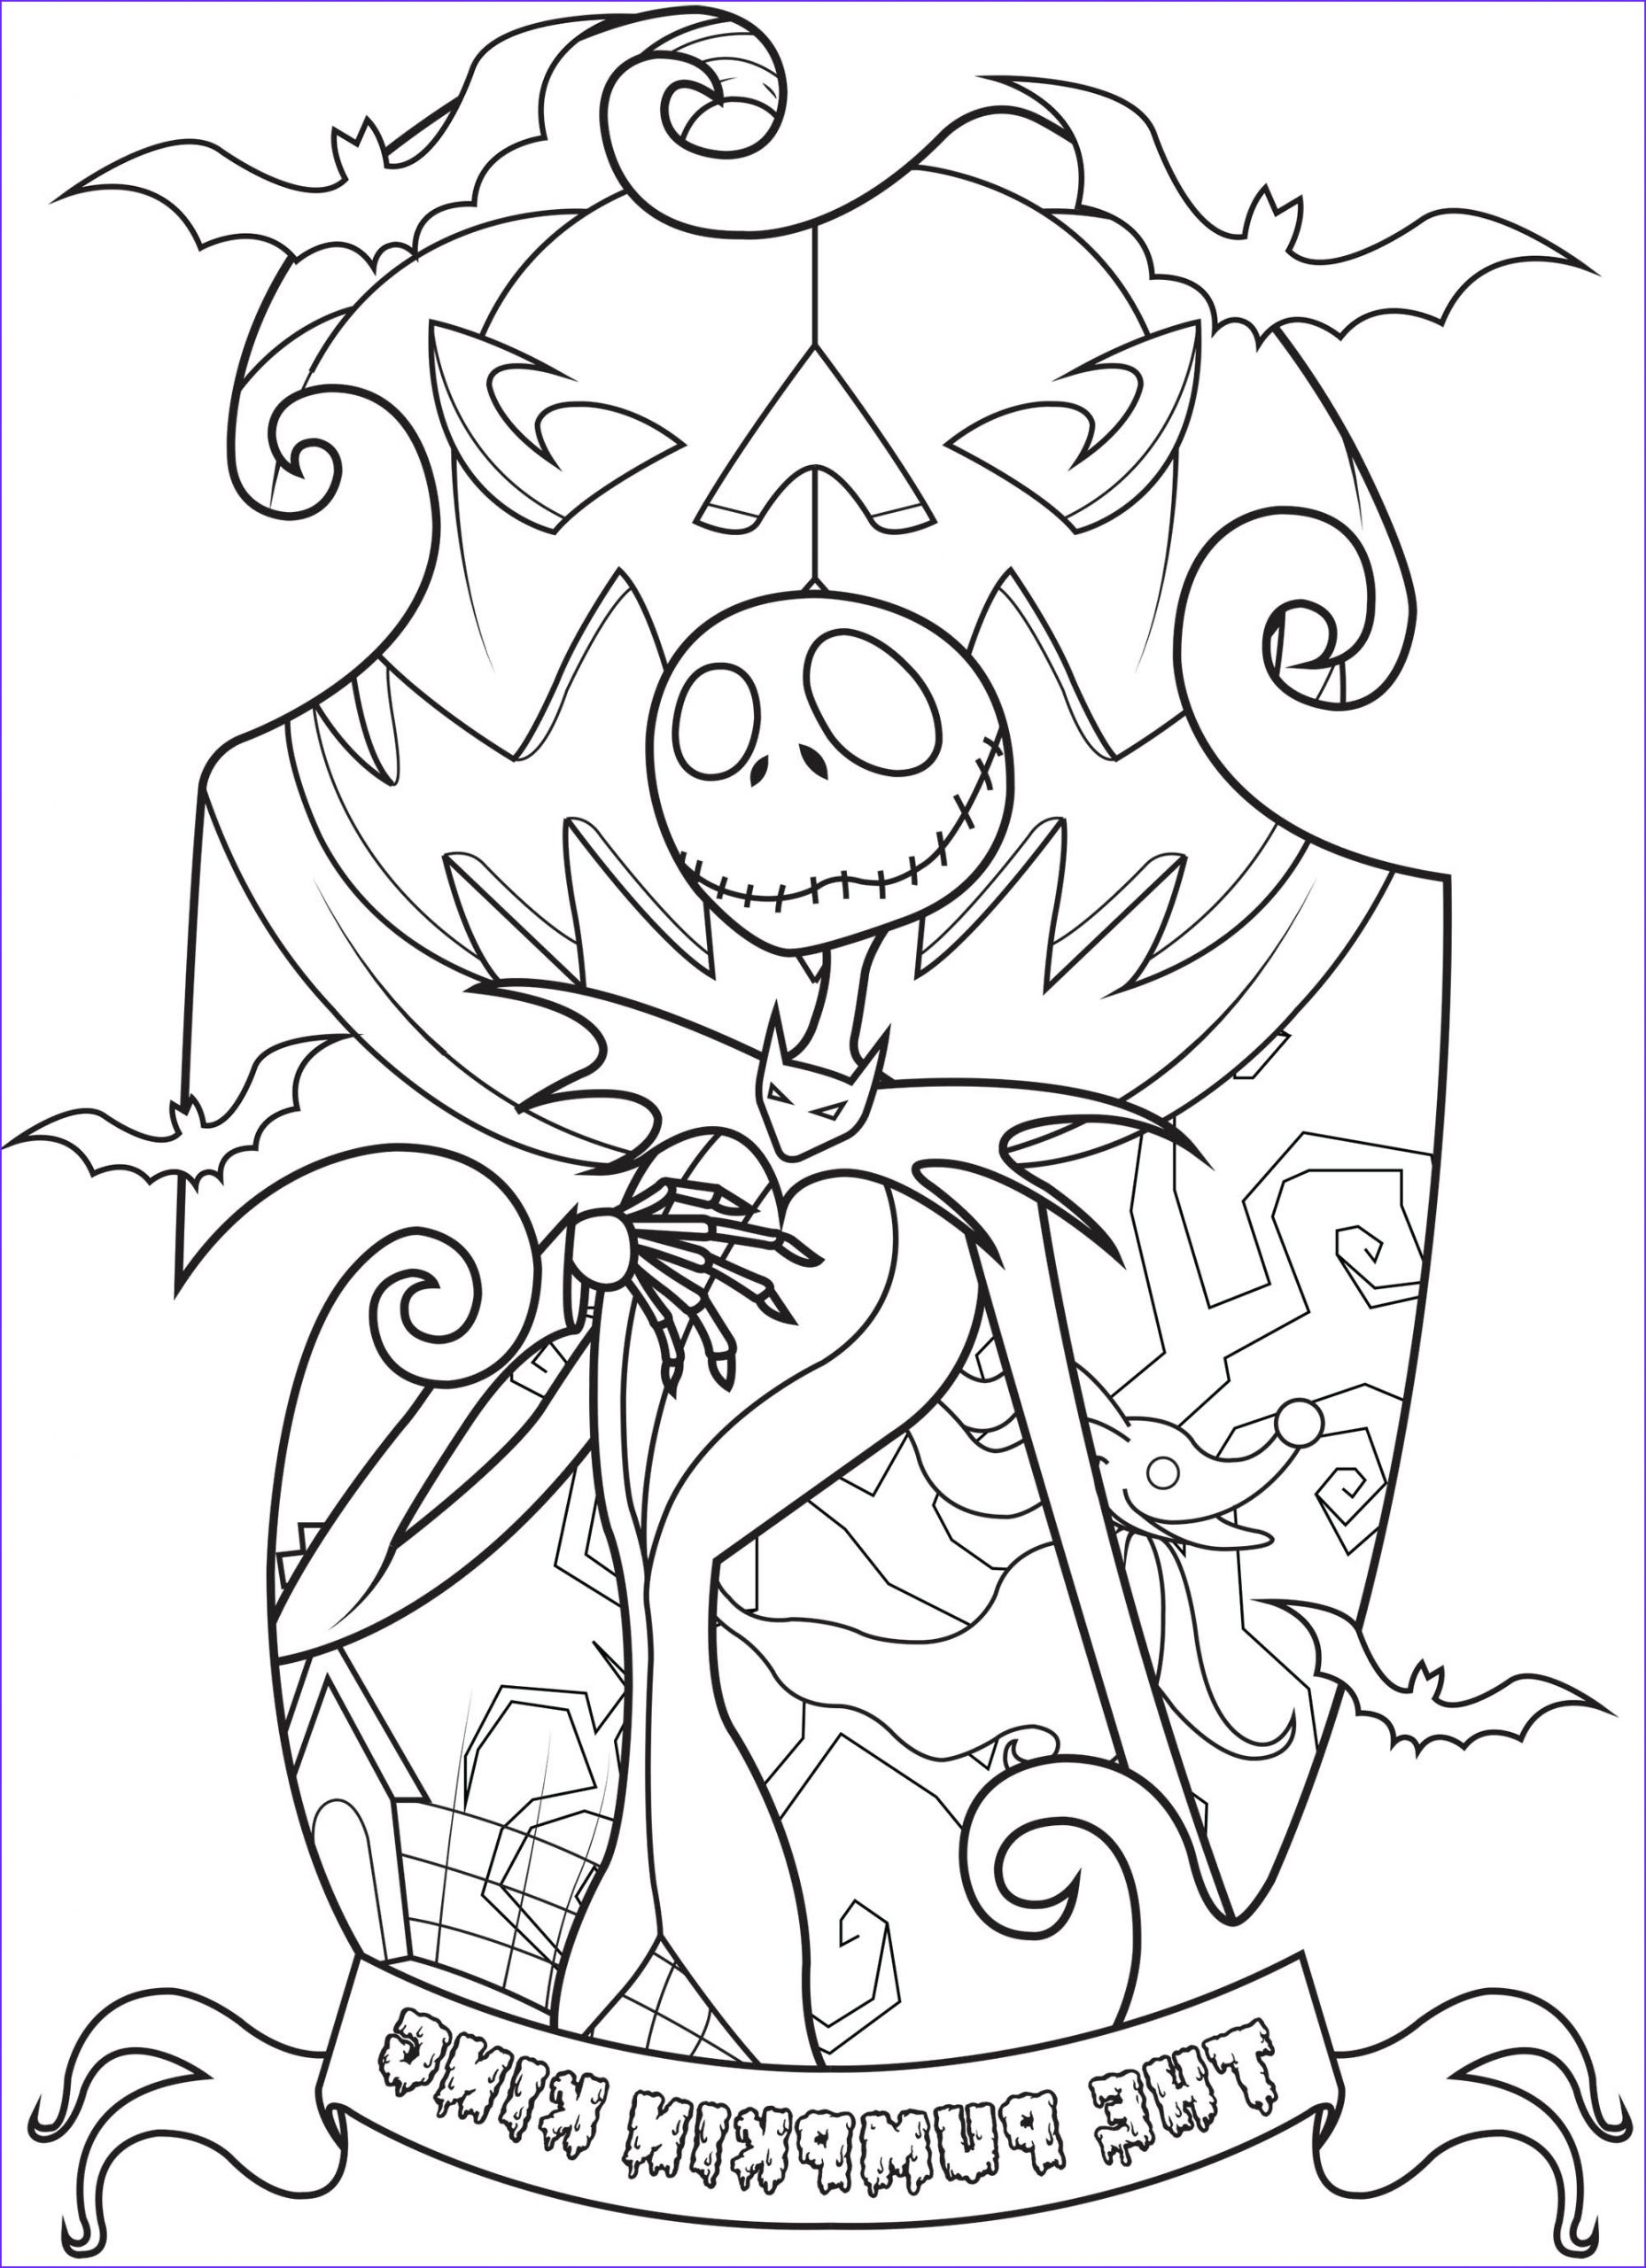 halloween adult coloring pages image=events halloween coloring jack skellington king of halloween town plex 1